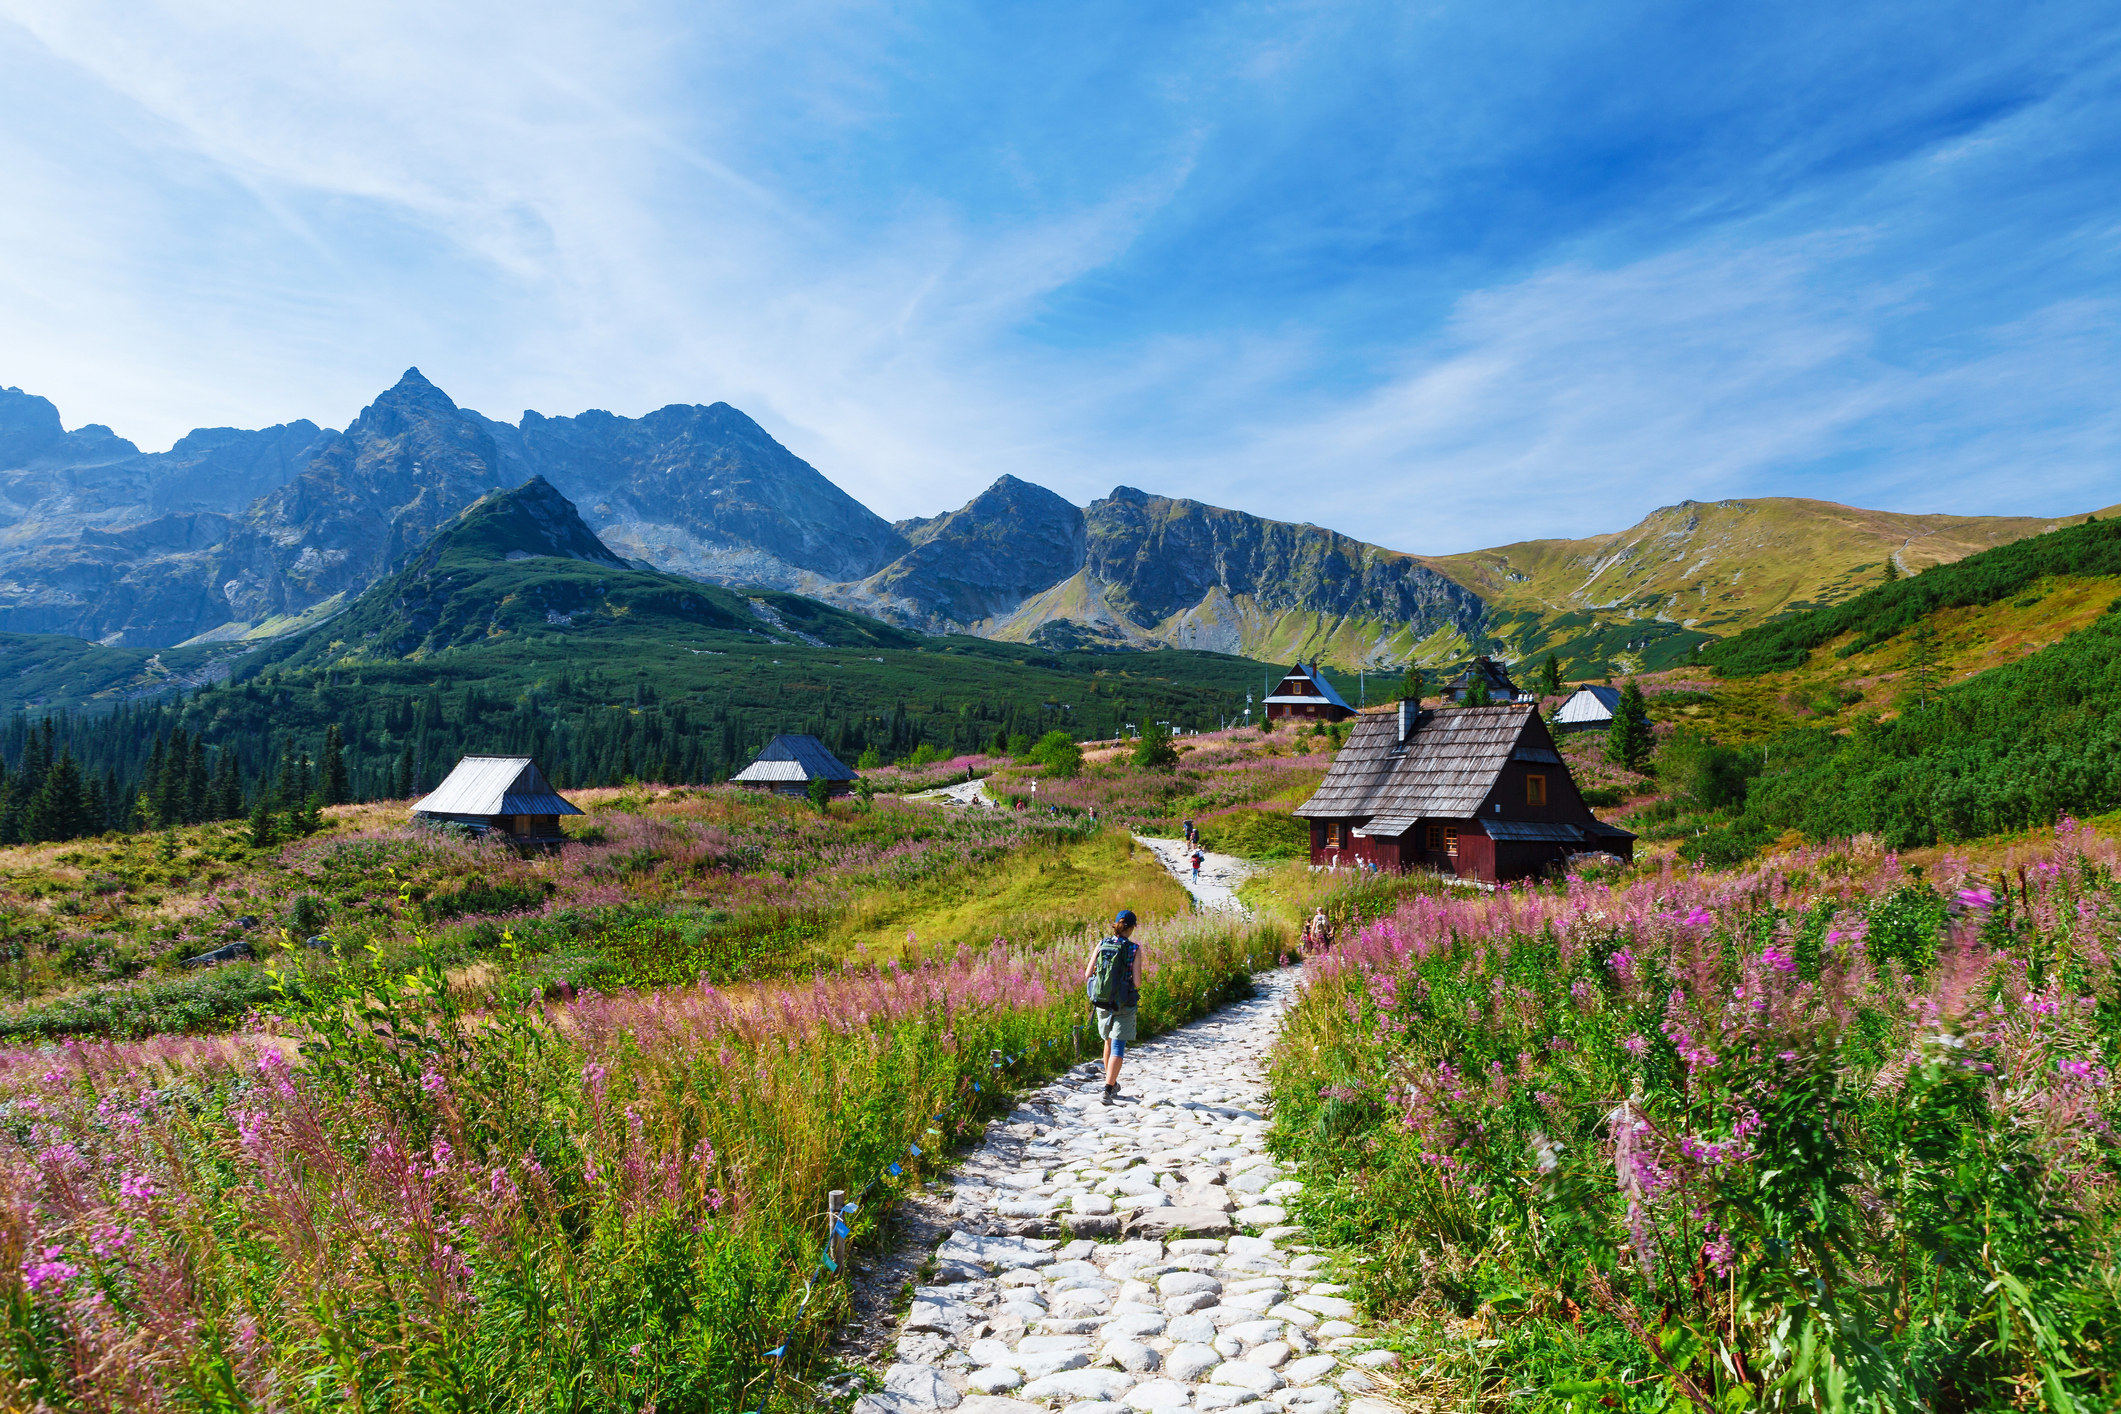 A stone path leading past wildflowers to an alpine hut, with tall mountains set against a bright blue sky